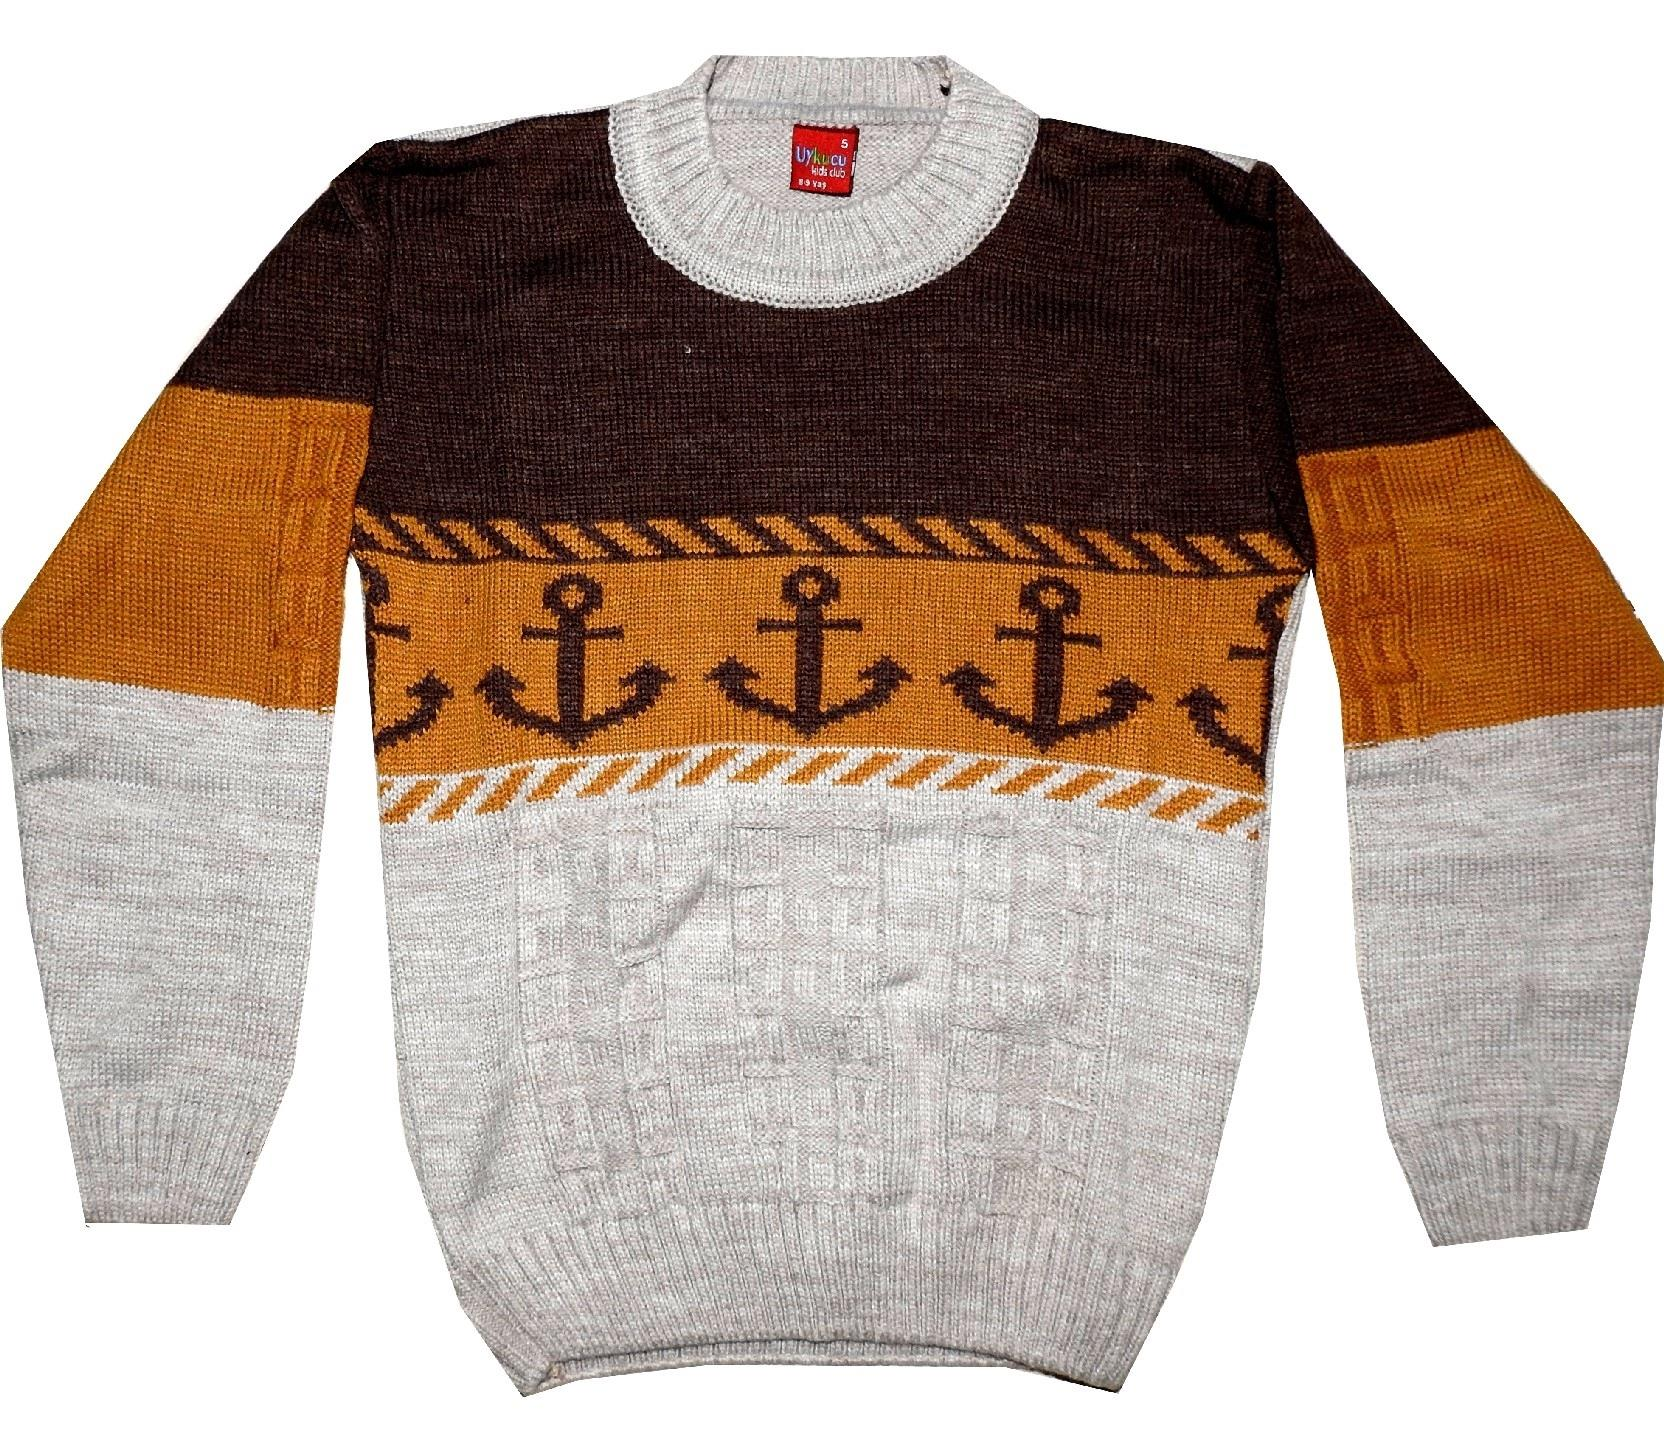 SHIP ANCHOR WEAVING DESIGN SWEATER FOR BOY (5-7-9 AGE)